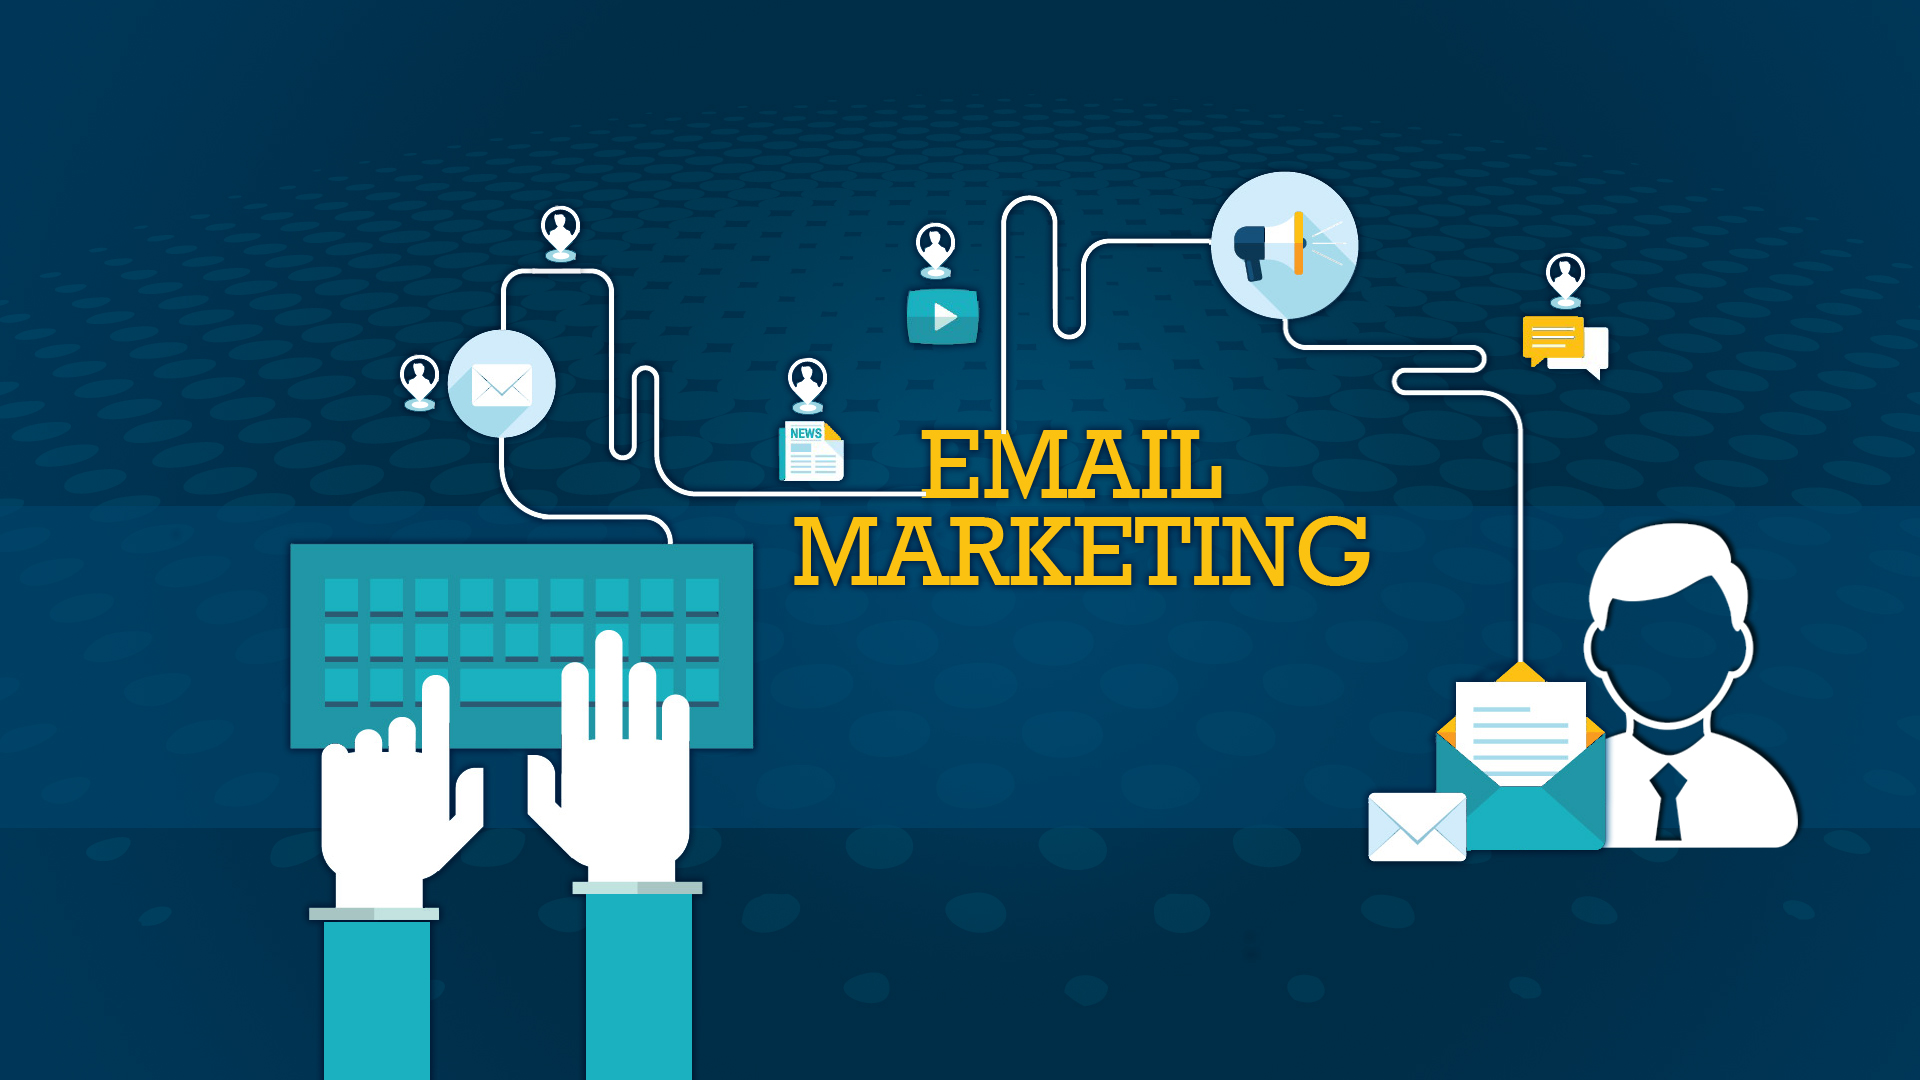 7 Best Practices to Generate Leads Through Email Marketing